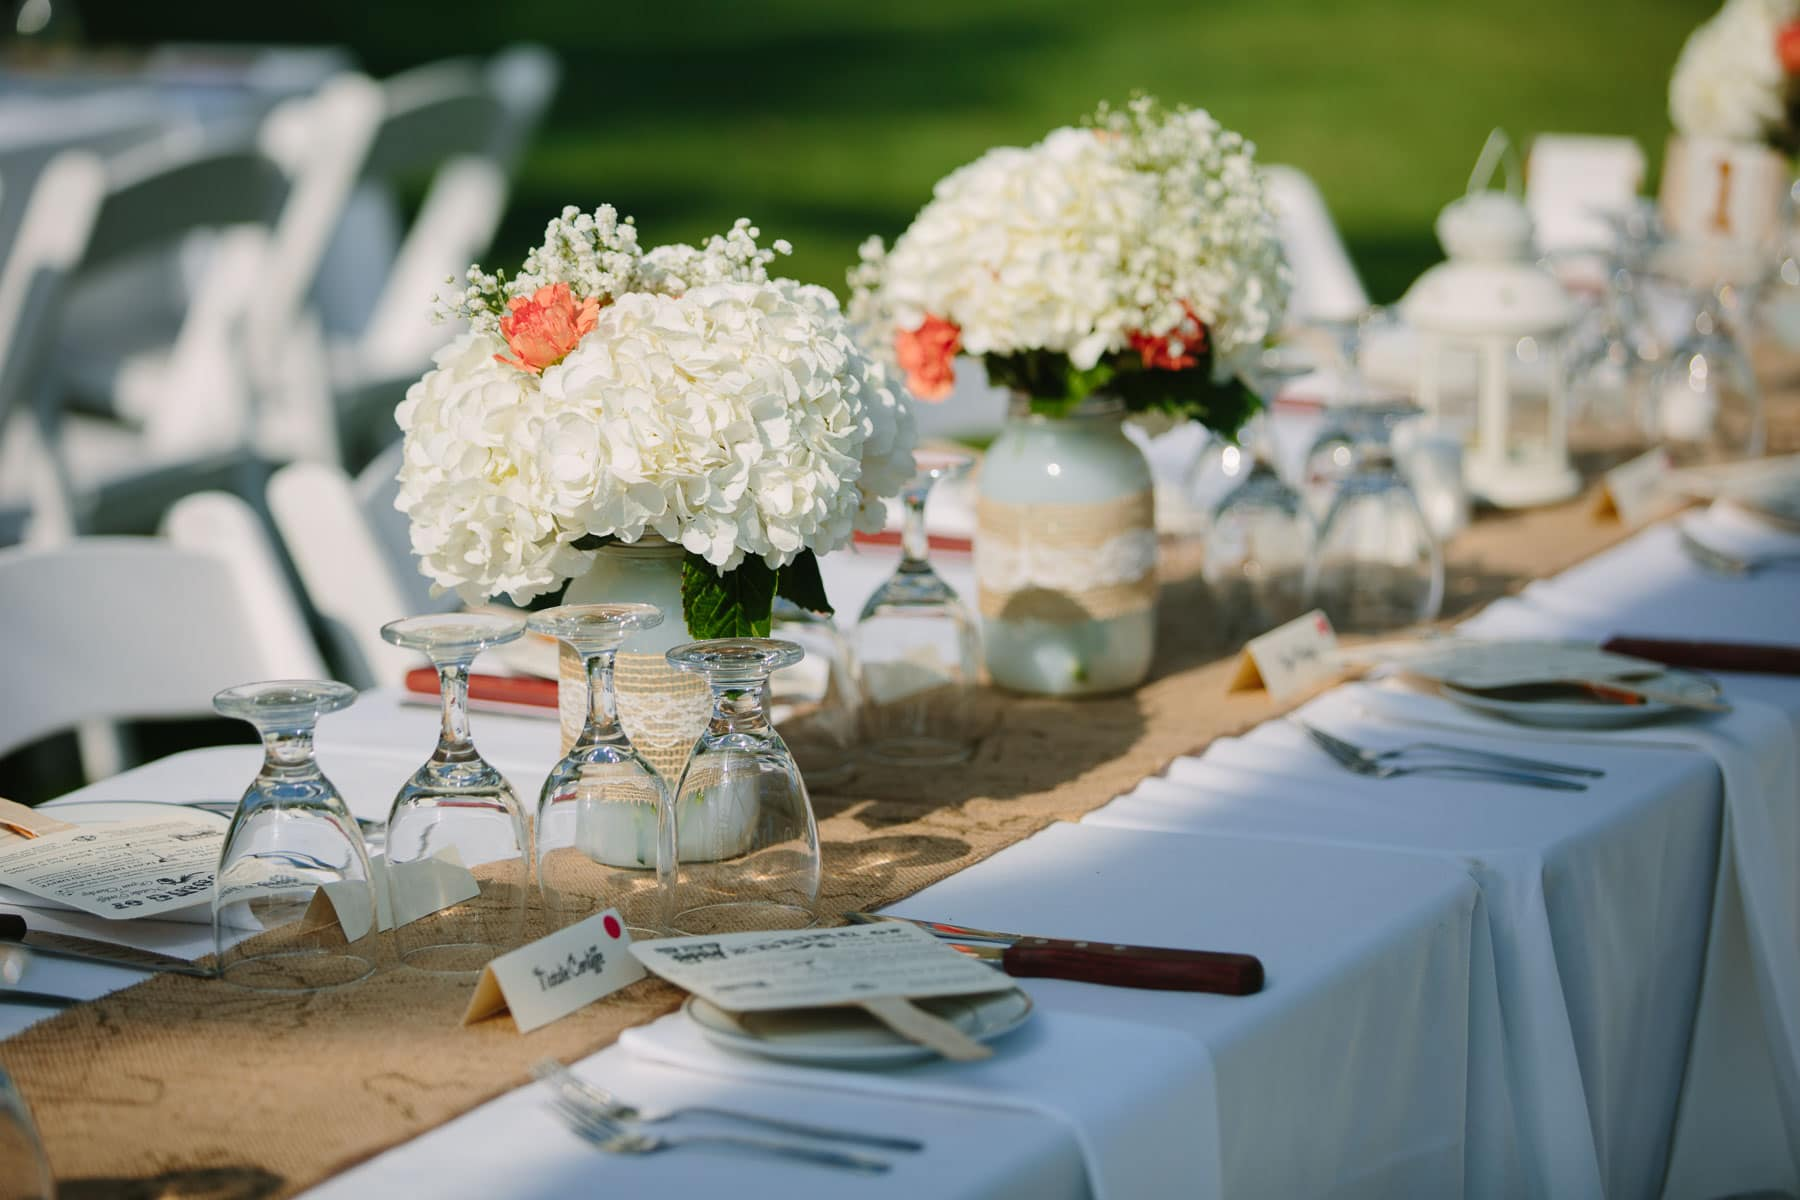 Wedding dinner decorations featuring flowers, menues on popsicle sticks, and cutlery in these backyard wedding photos.